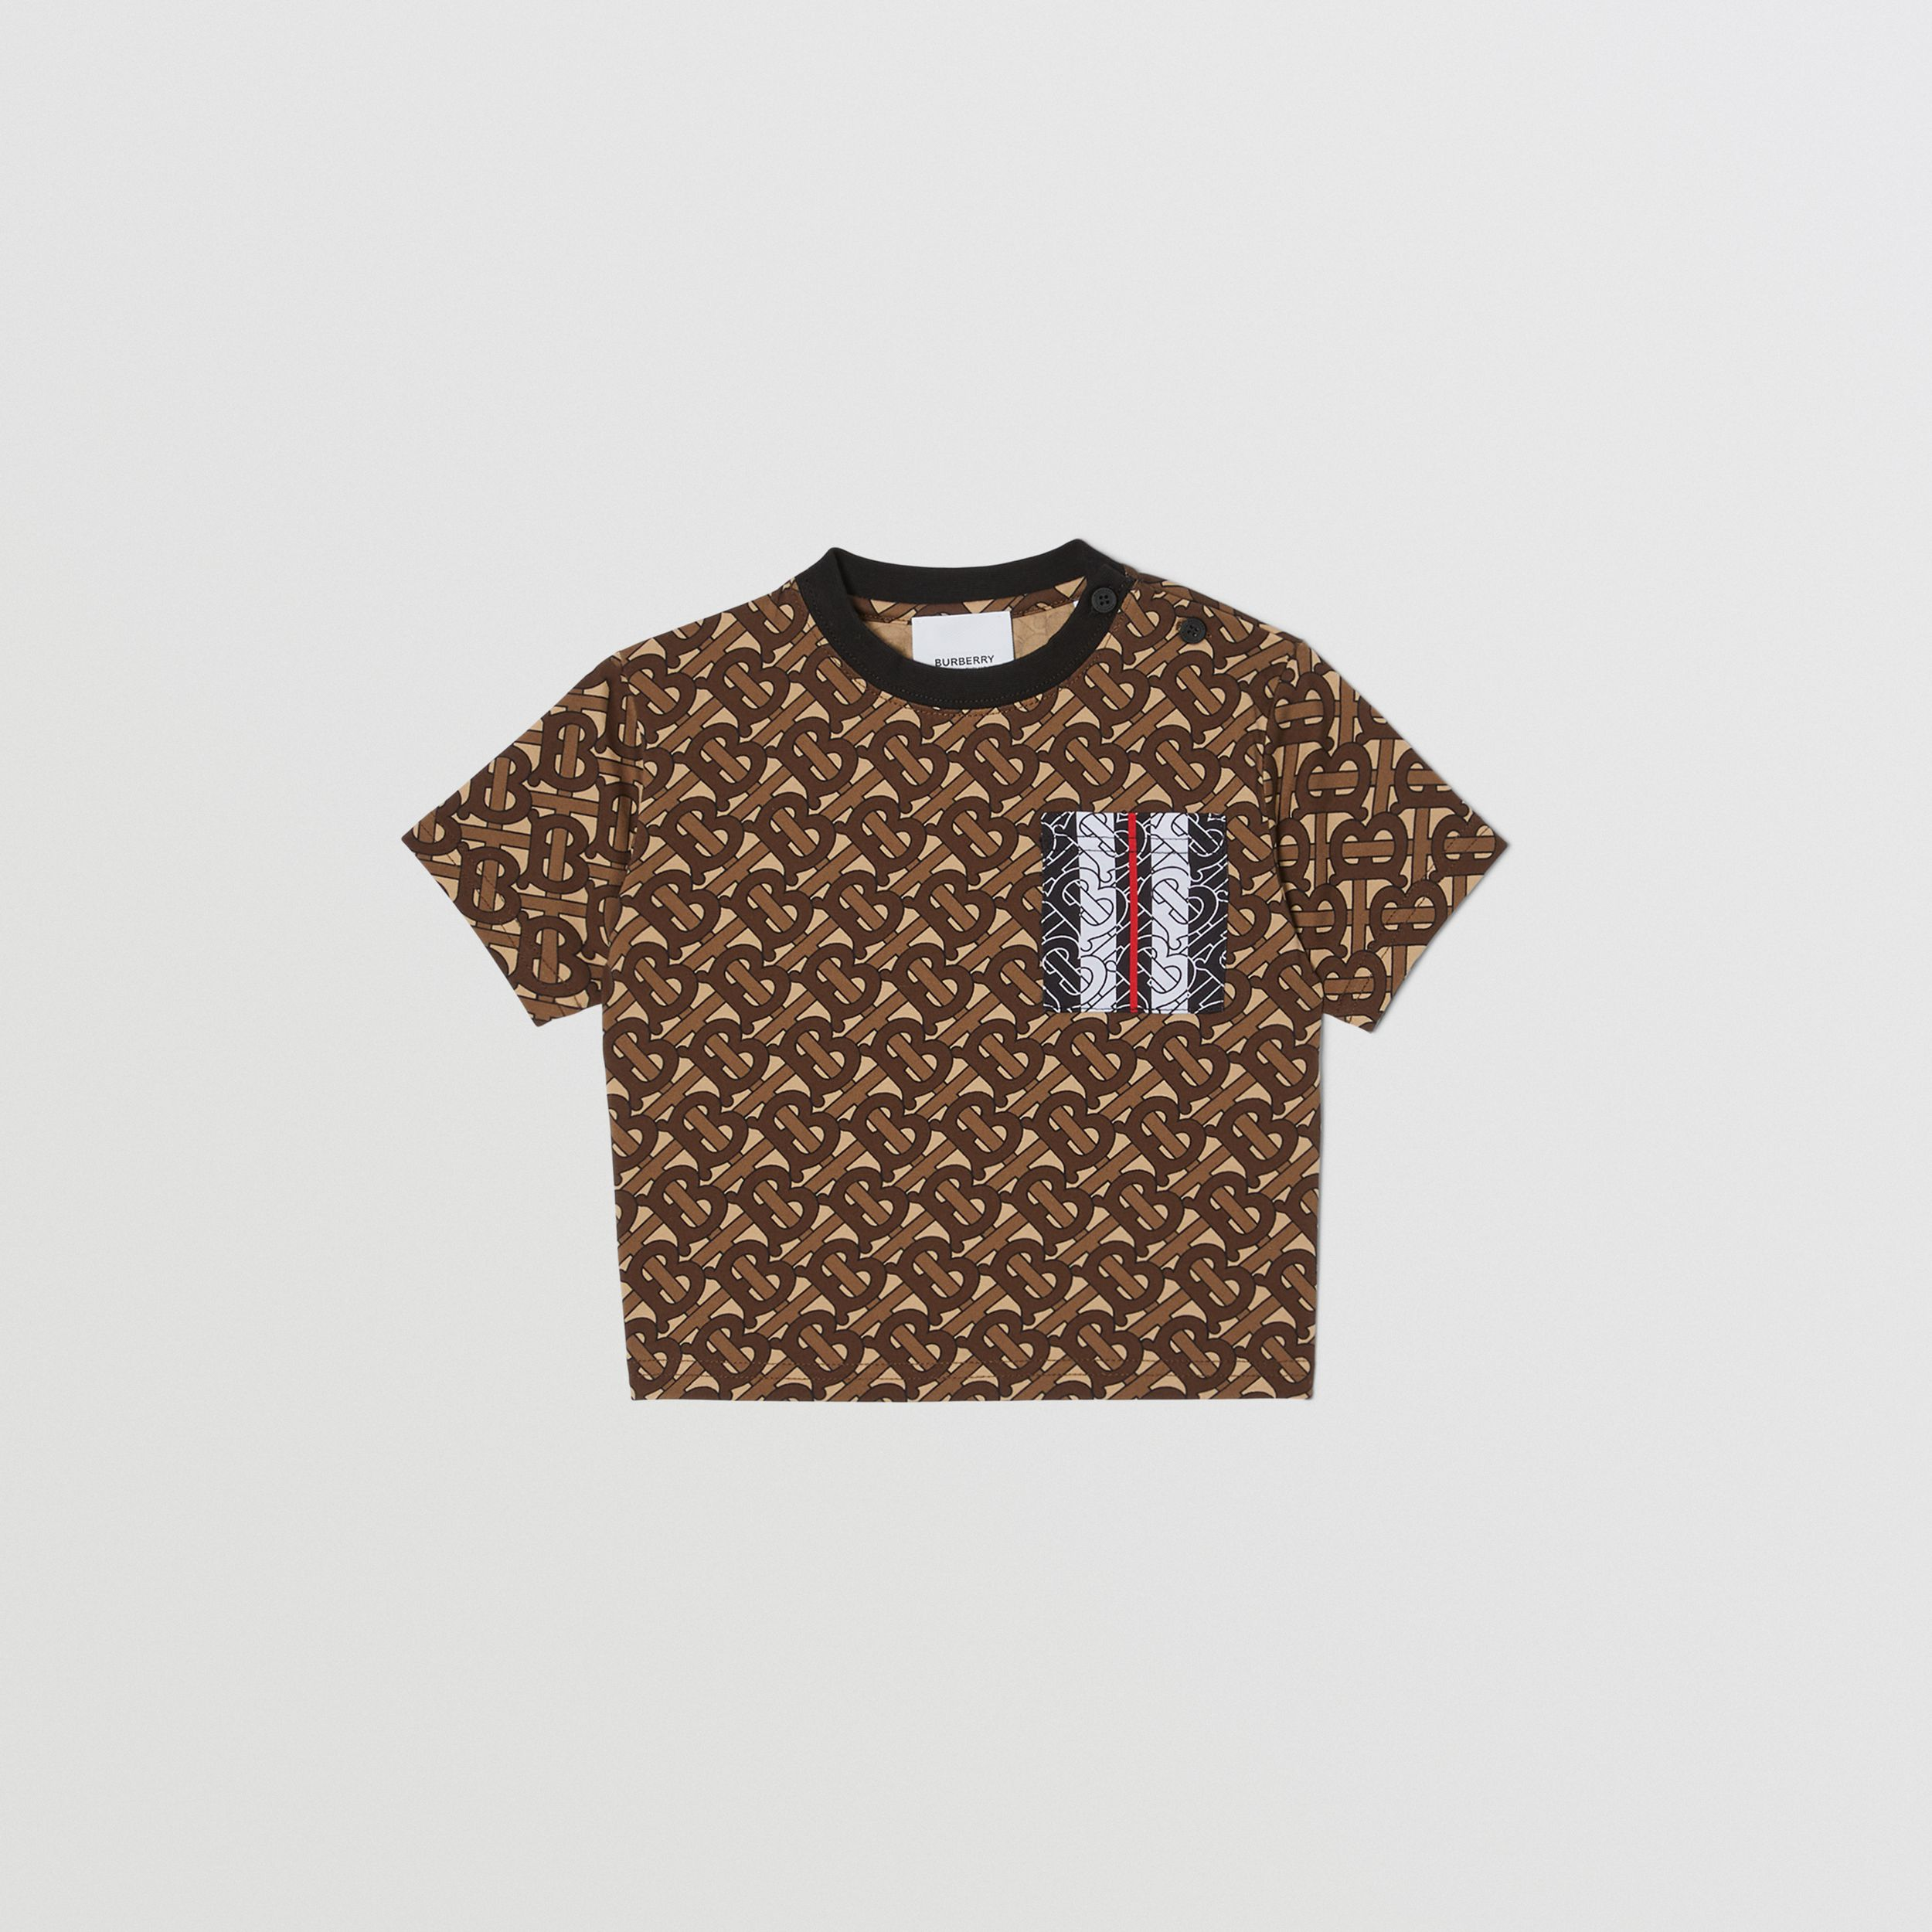 Monogram Stripe Print Cotton T-shirt in Bridle Brown - Children | Burberry - 1